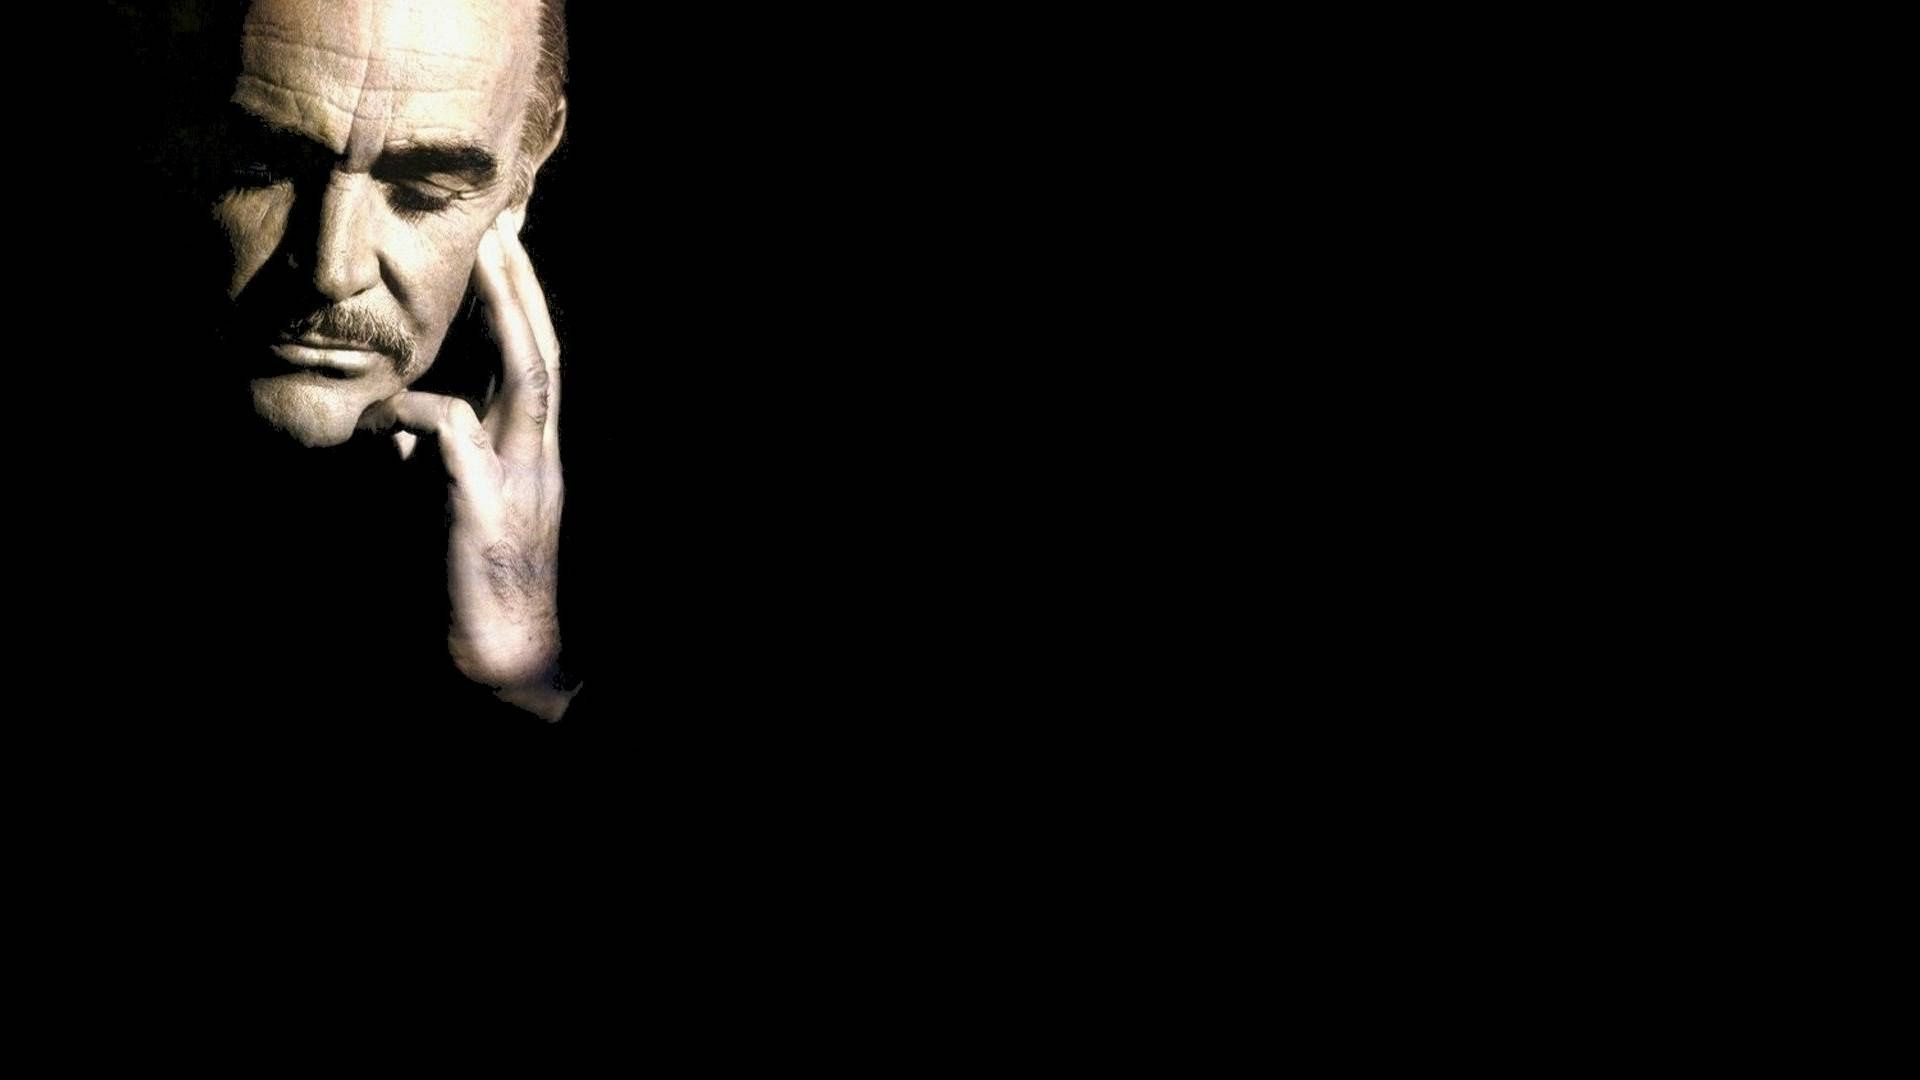 Sean Connery Wallpapers, Sean Connery Wallpapers For Free Download